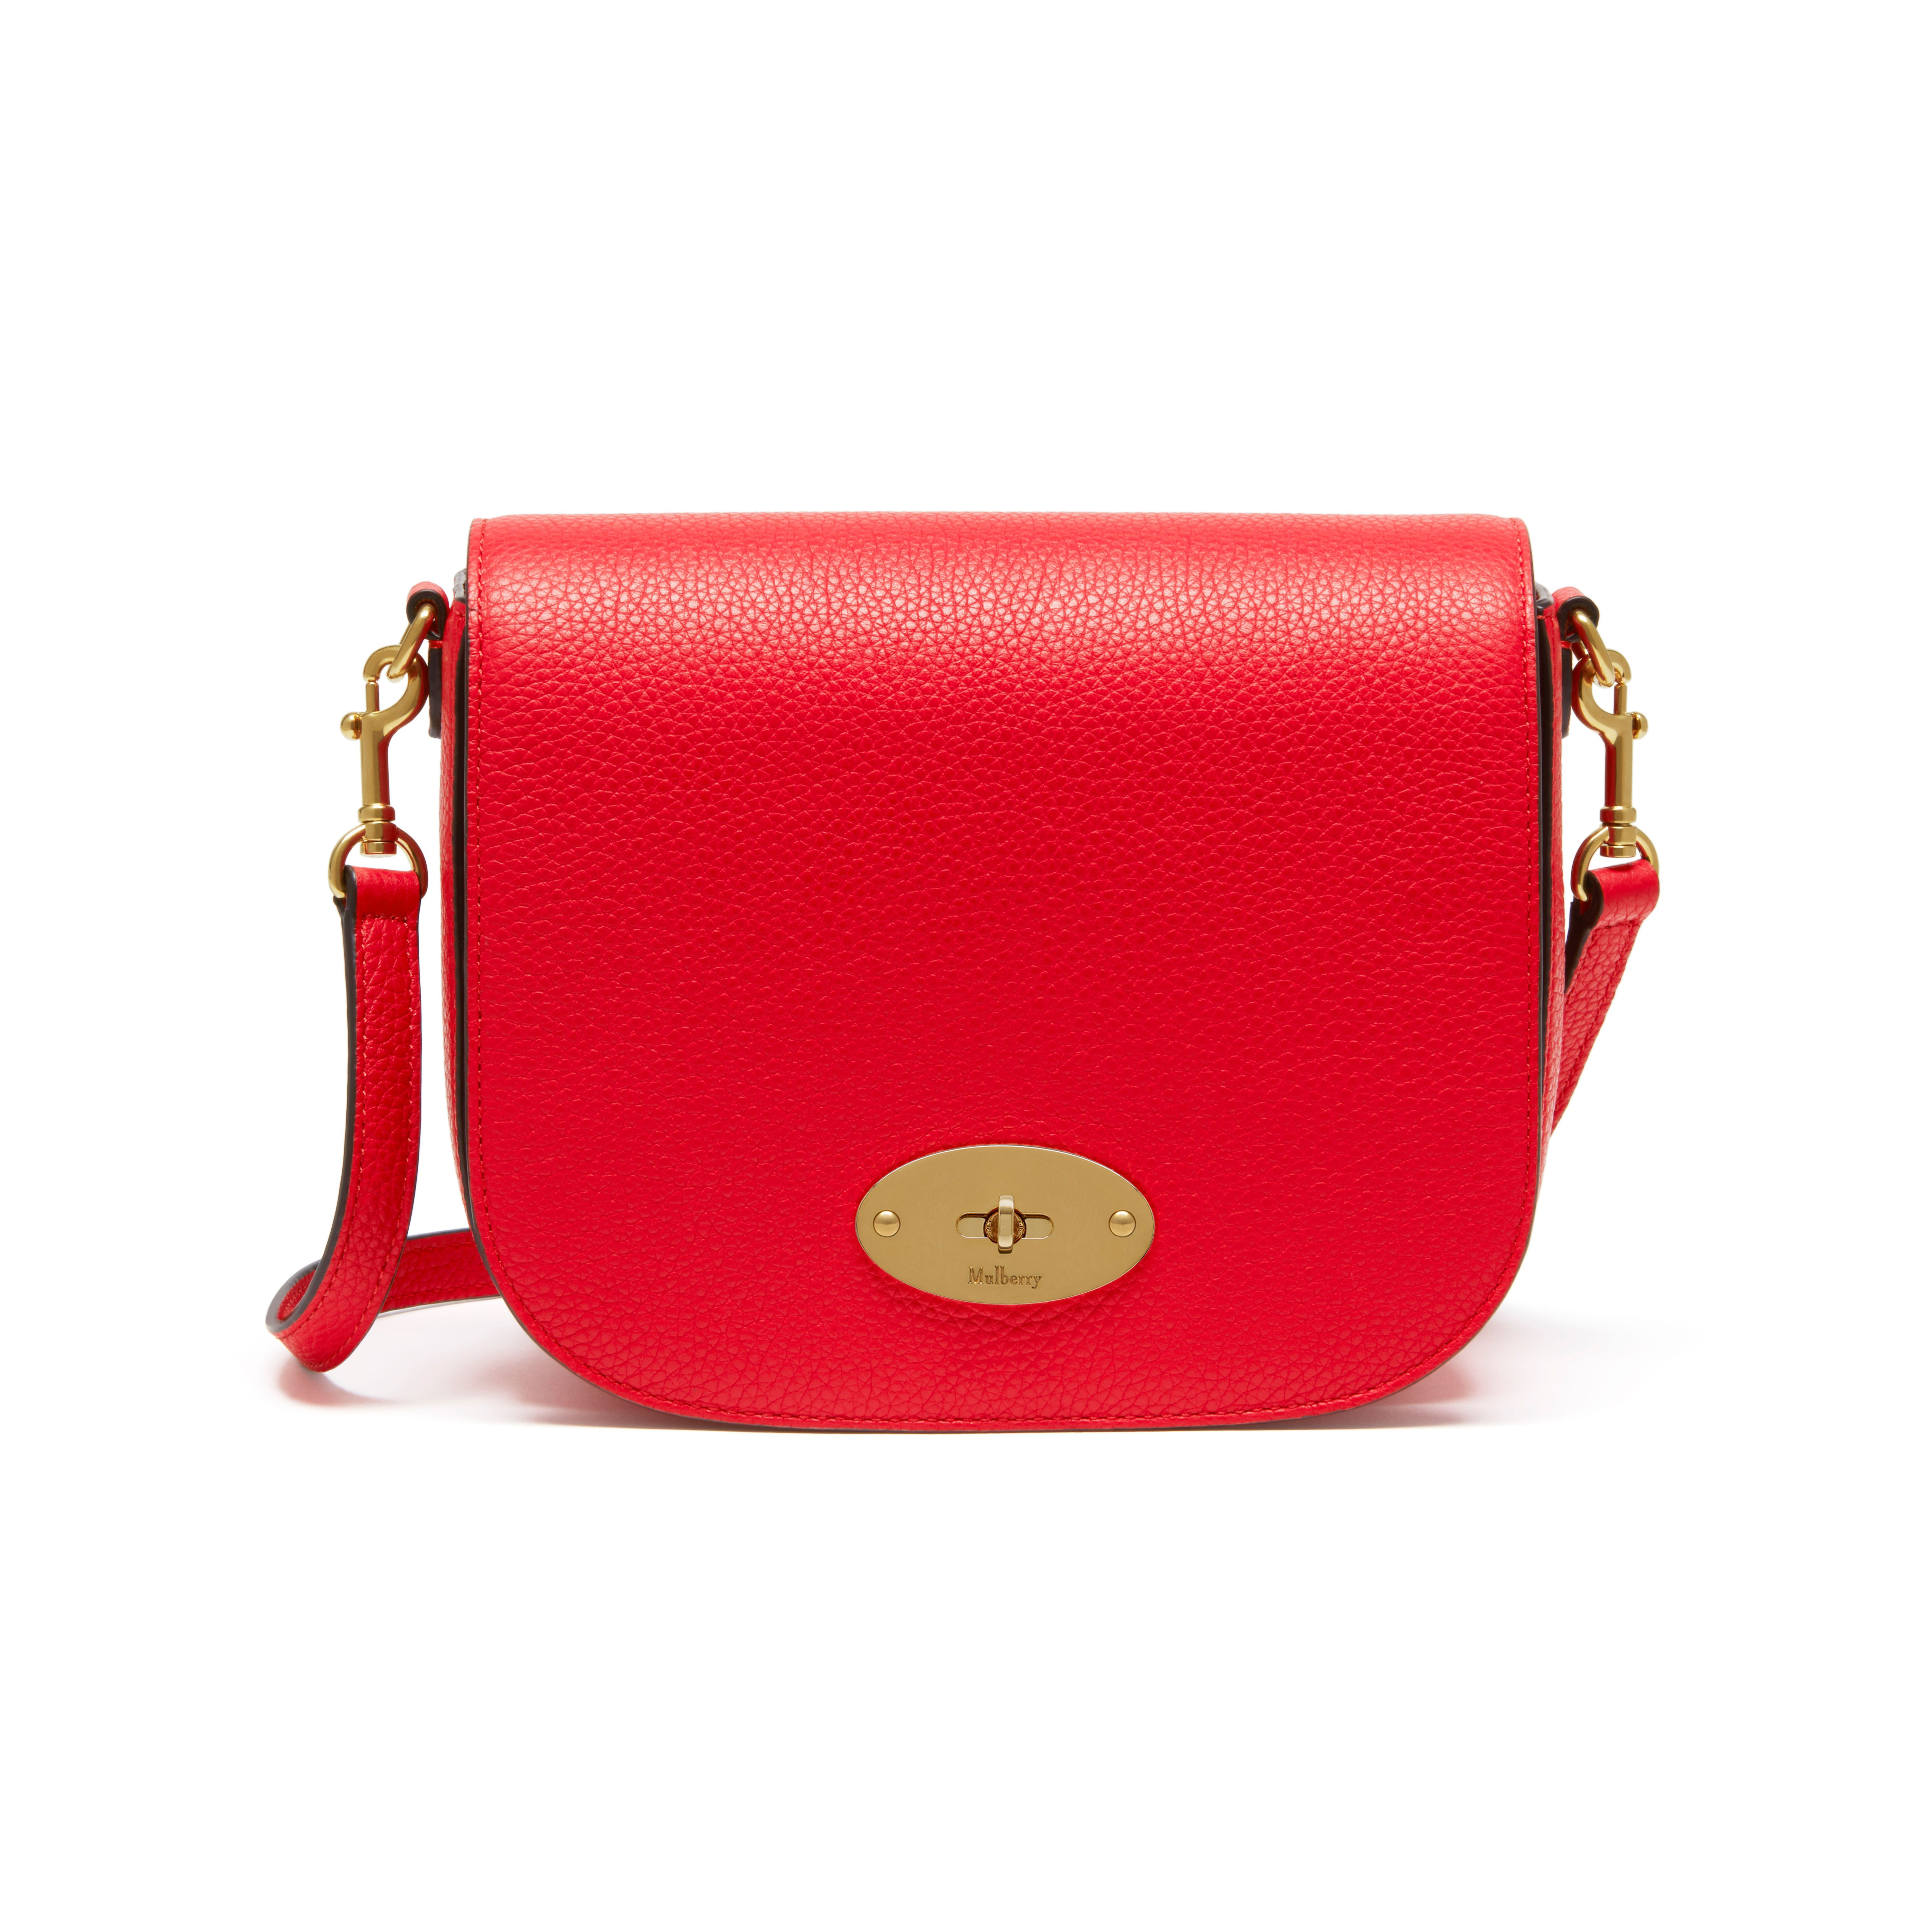 Shop the Small Darley Satchel in Small Classic Grain in Fiery Red Leather  at Mulberry.com. The Small Darley Satchel has retro mini-bag appeal 6feaa5c112b9c